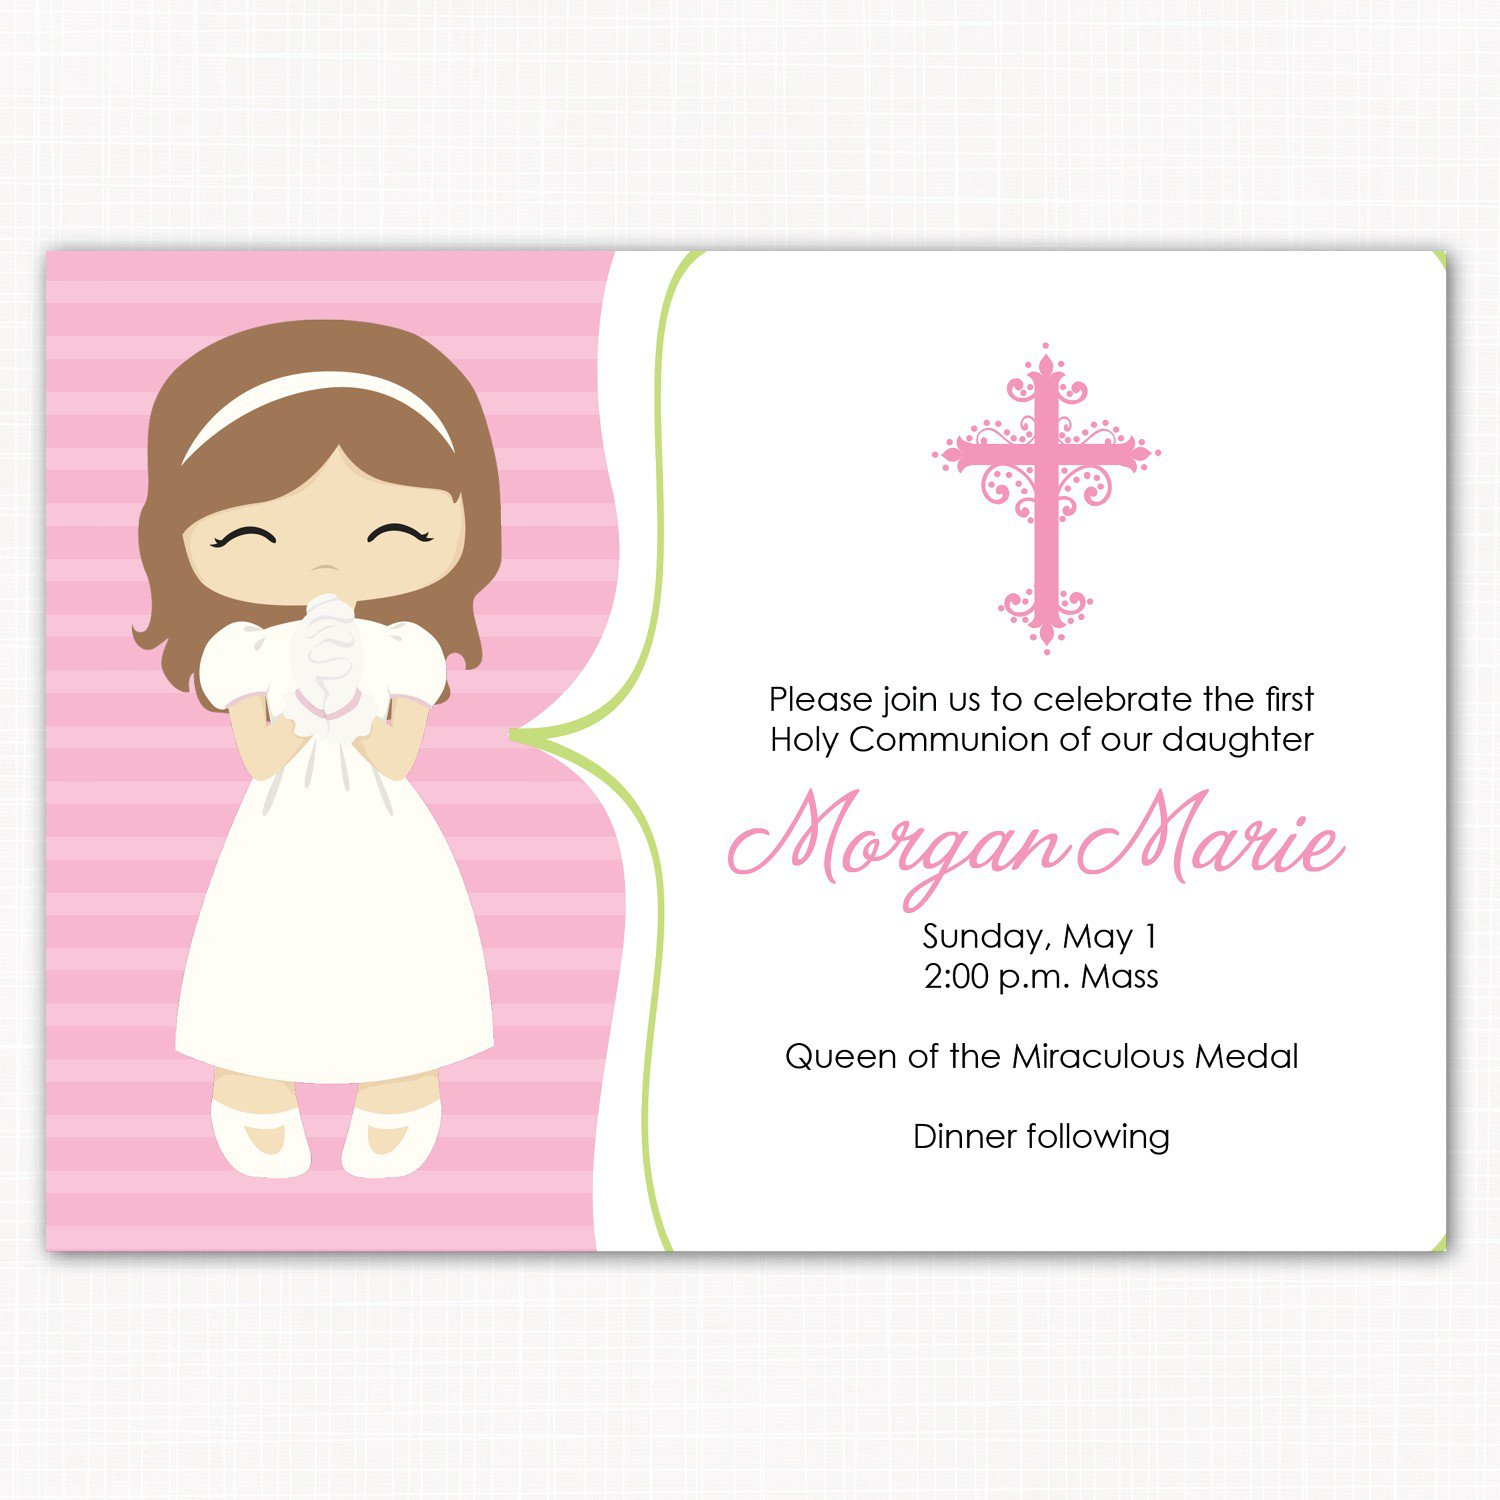 Samples Of First Communion Invitations In Spanish